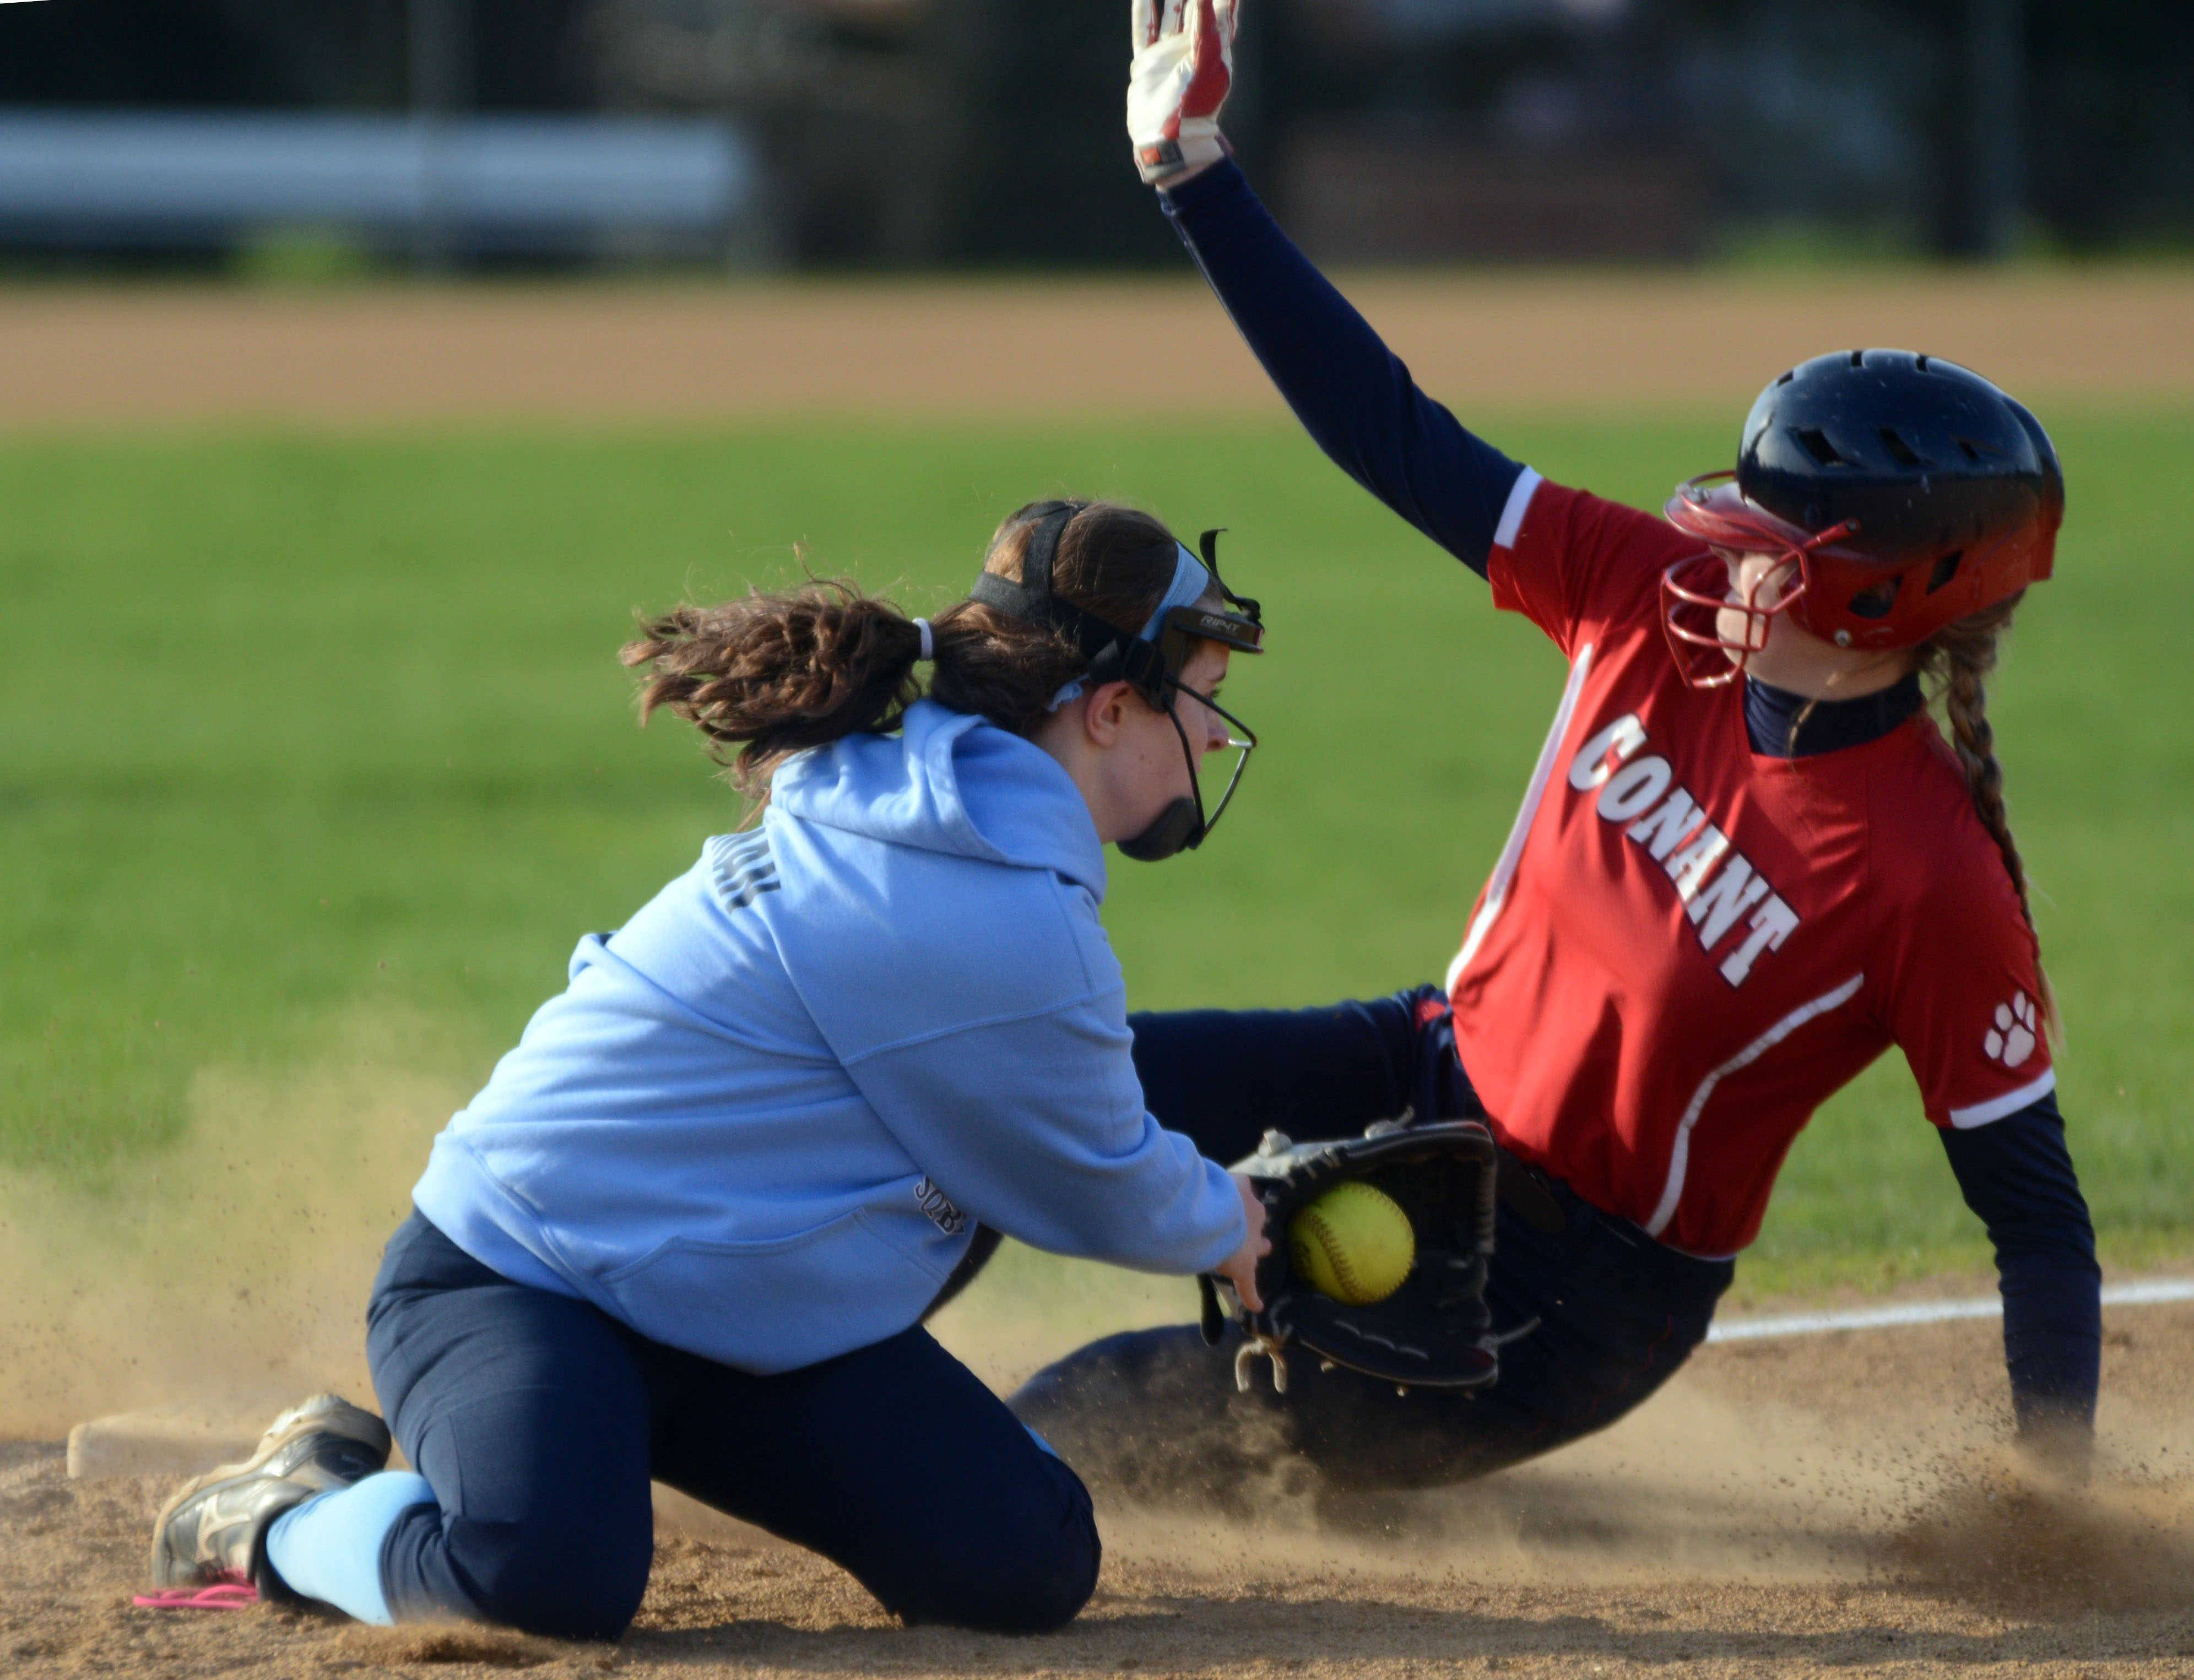 Conant's Sara Neuman, right, is safe at third base ahead of the tag by Prospect's Cate Meersman on Monday.